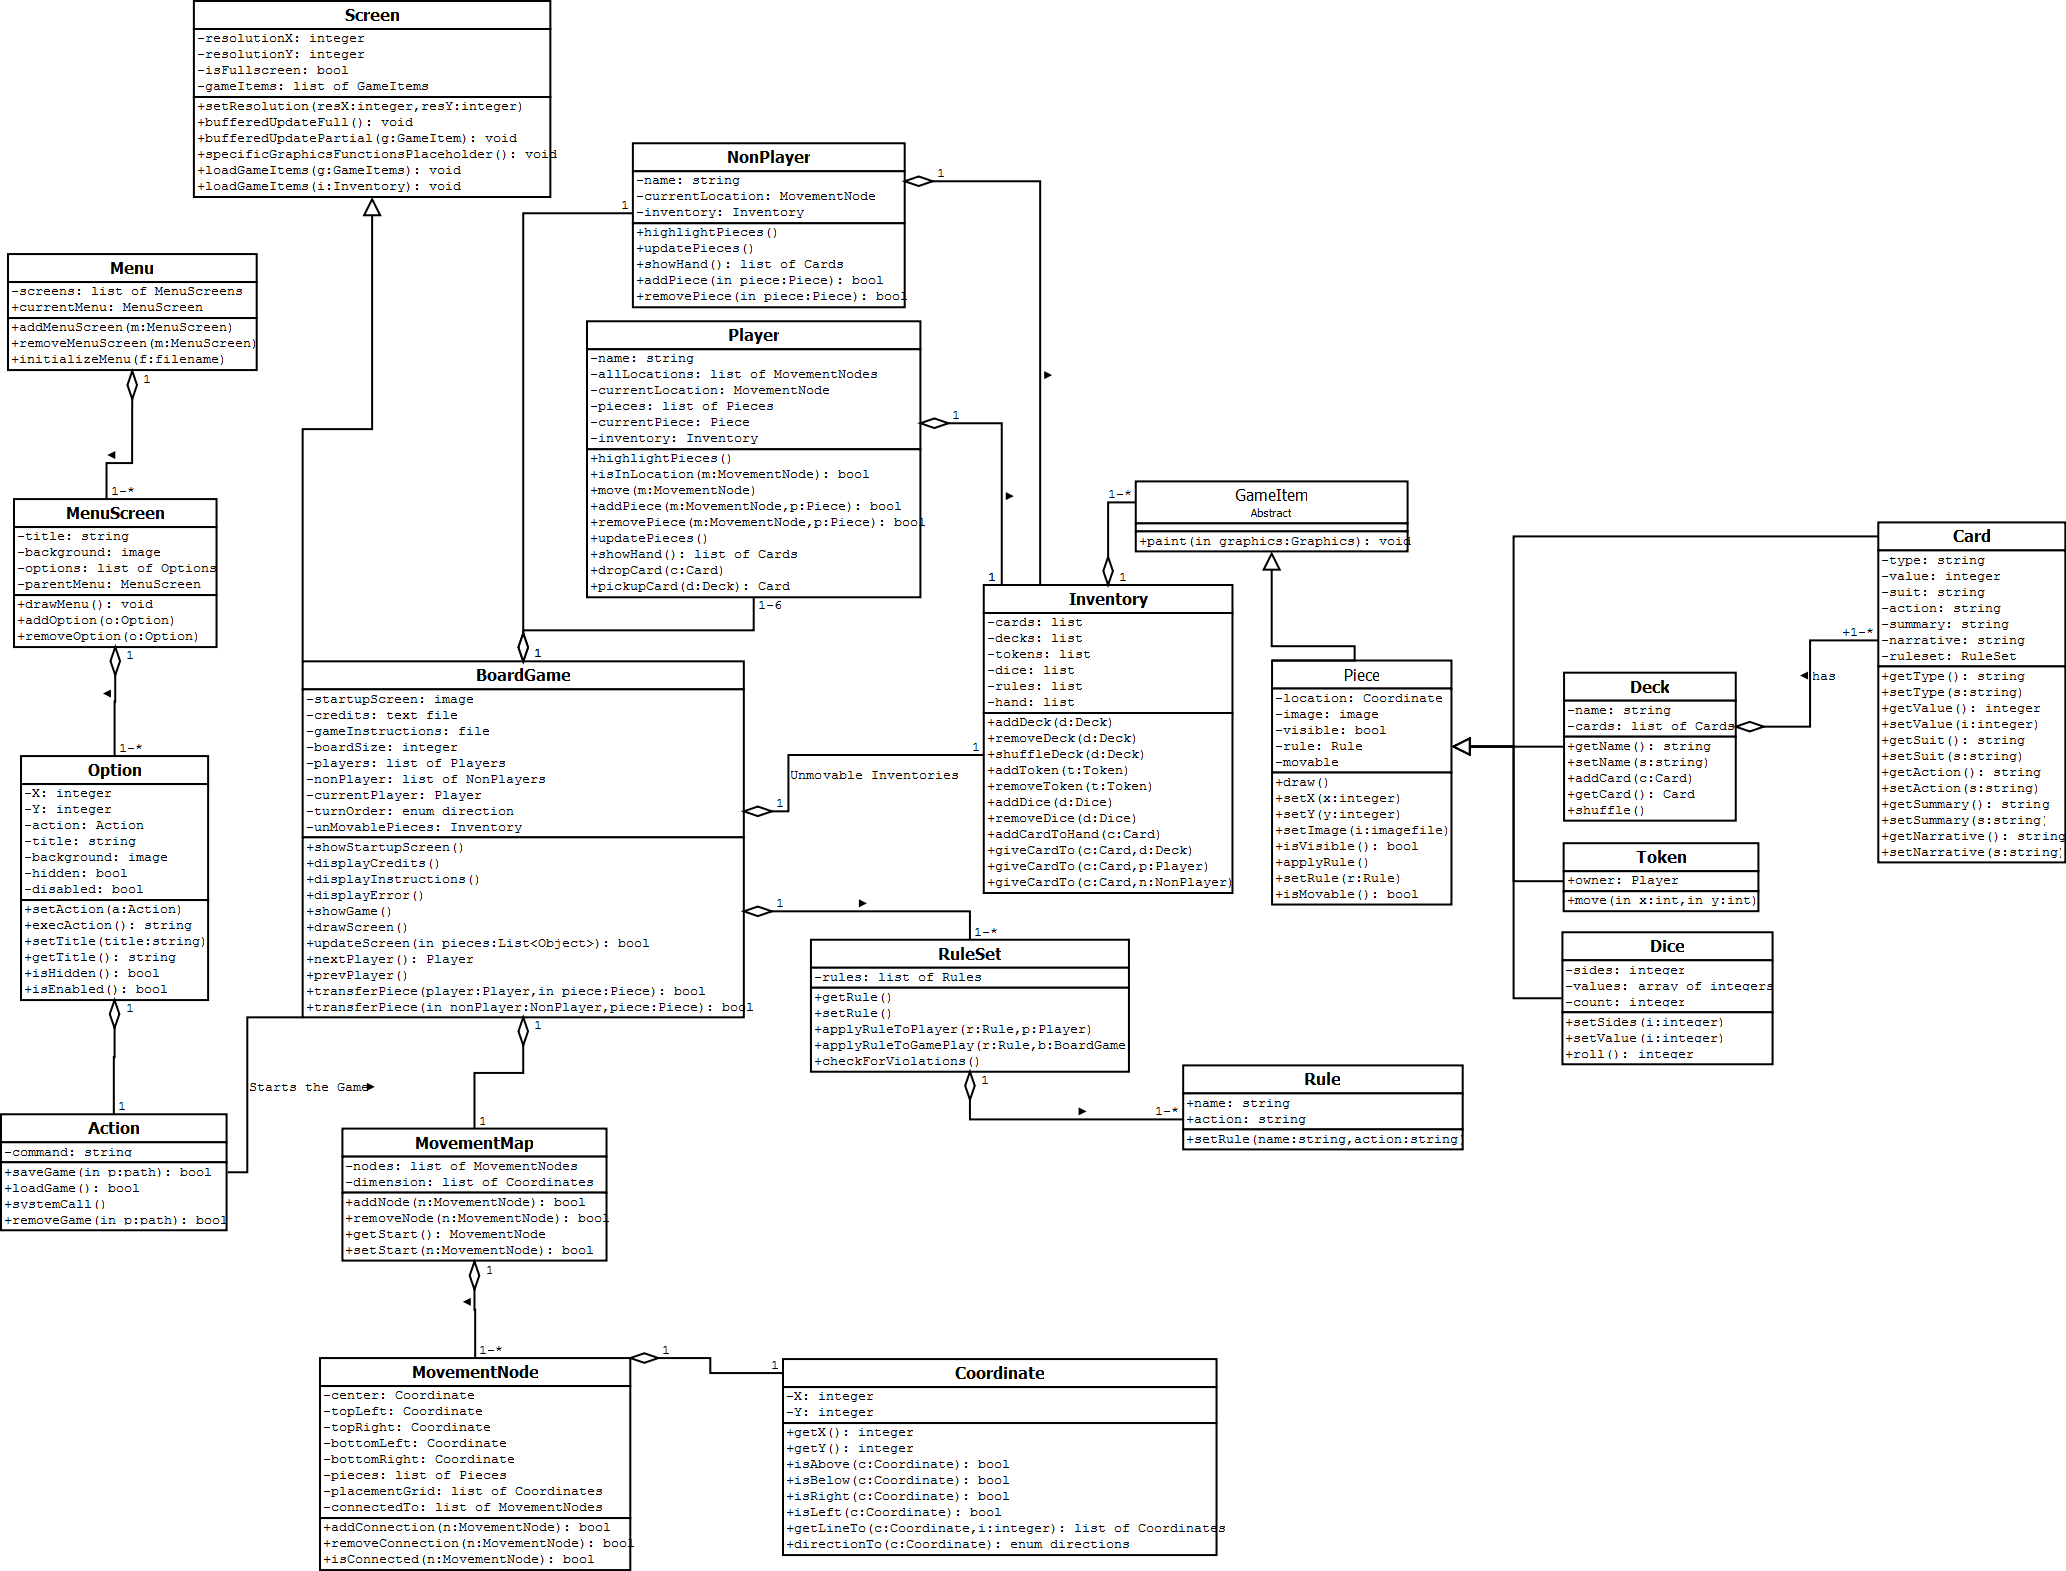 cs table teamlinks to the class diagram as a  dia file or